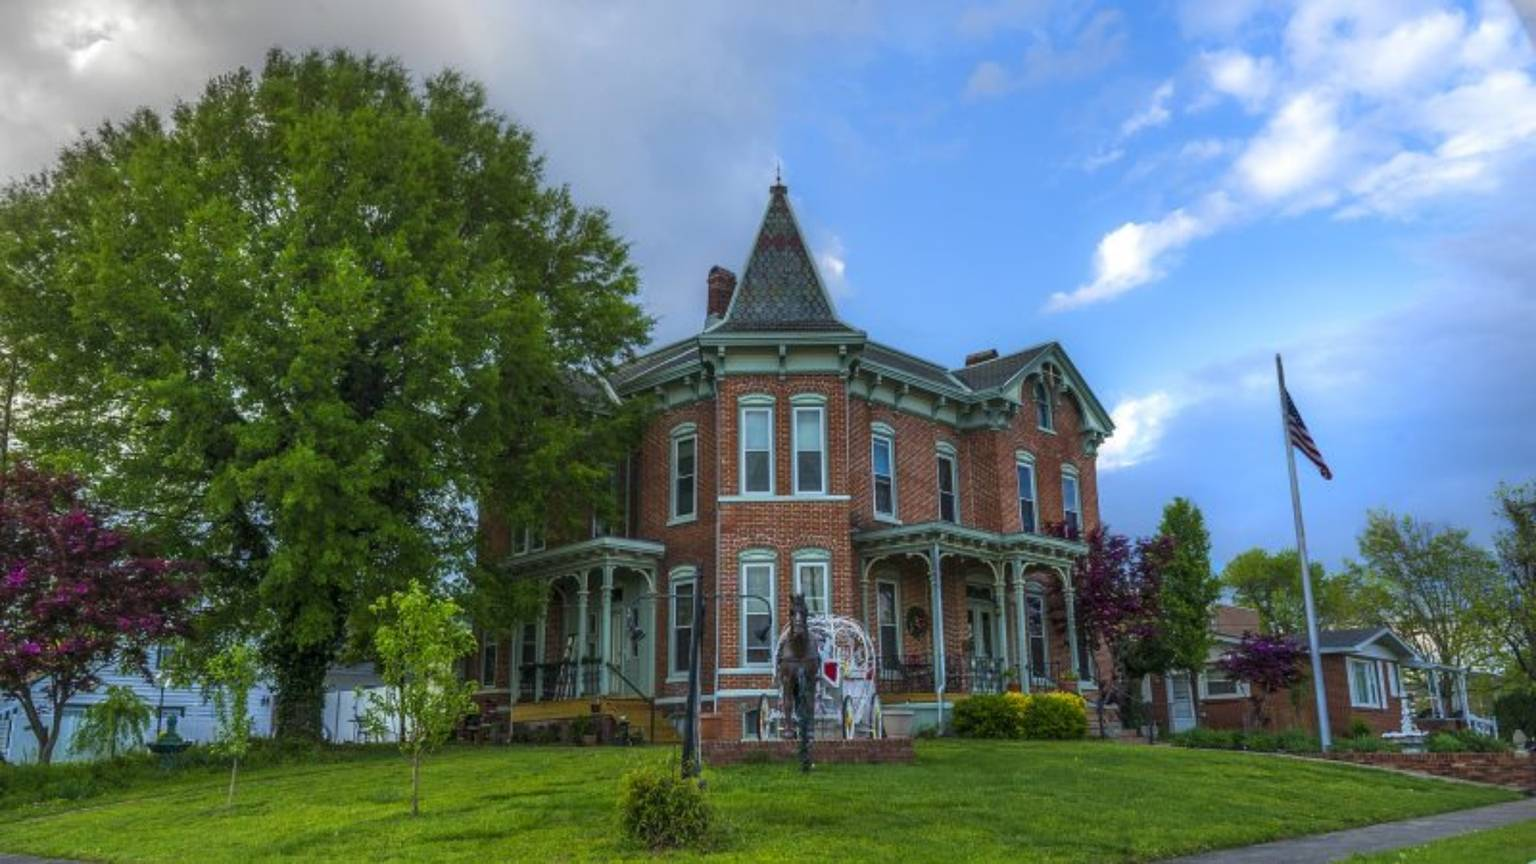 A large brick building with grass in front of a house at Summers Riverview Mansion Bed And Breakfast.